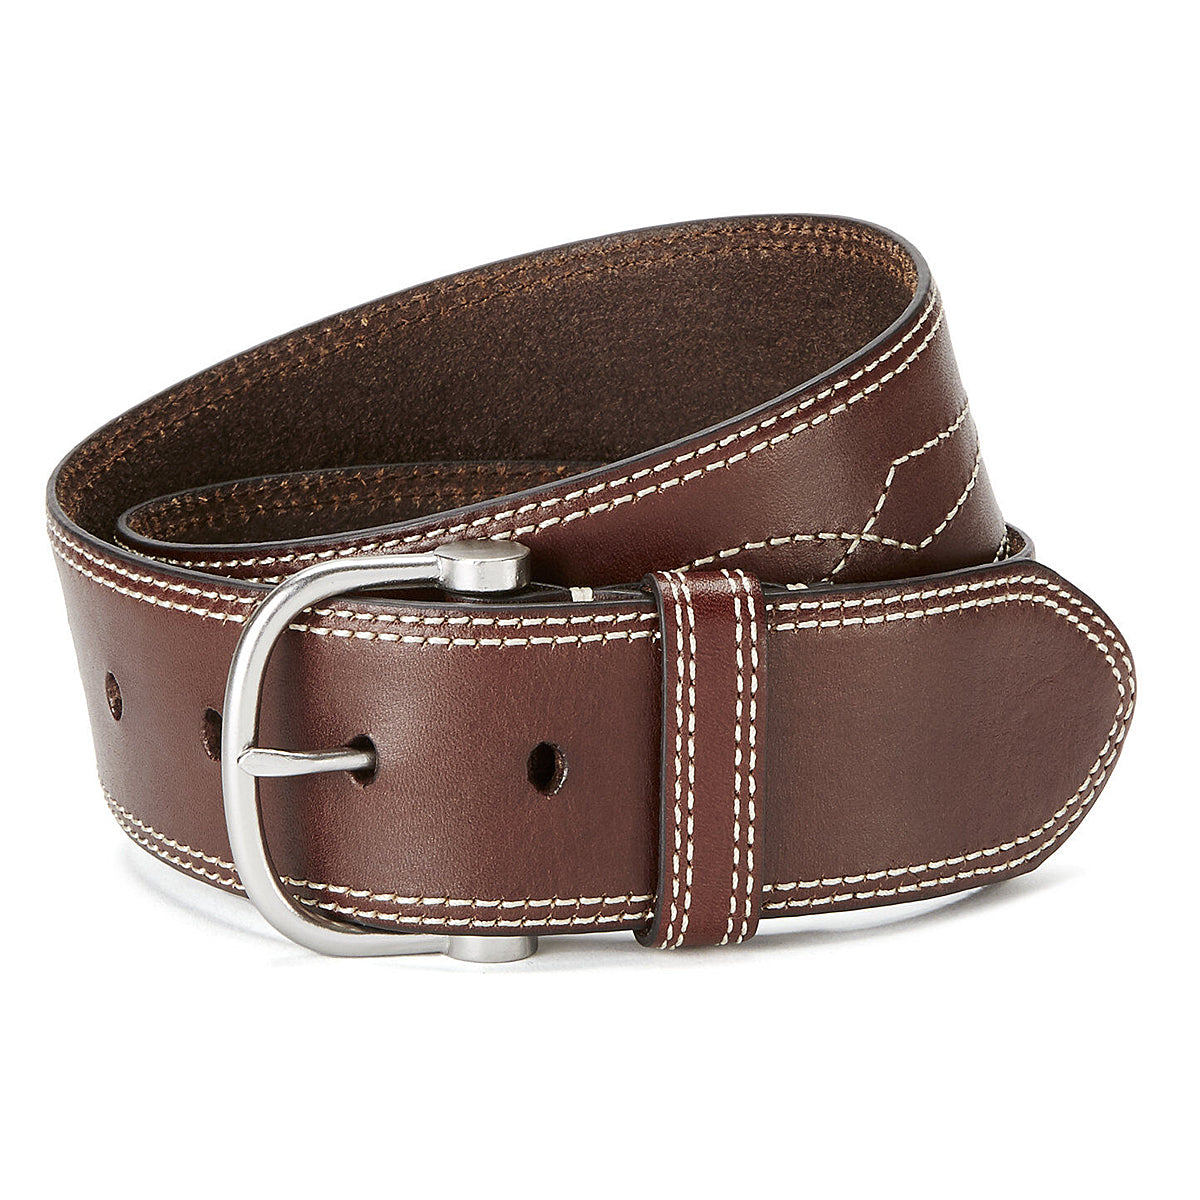 Ariat Saddlery Belt